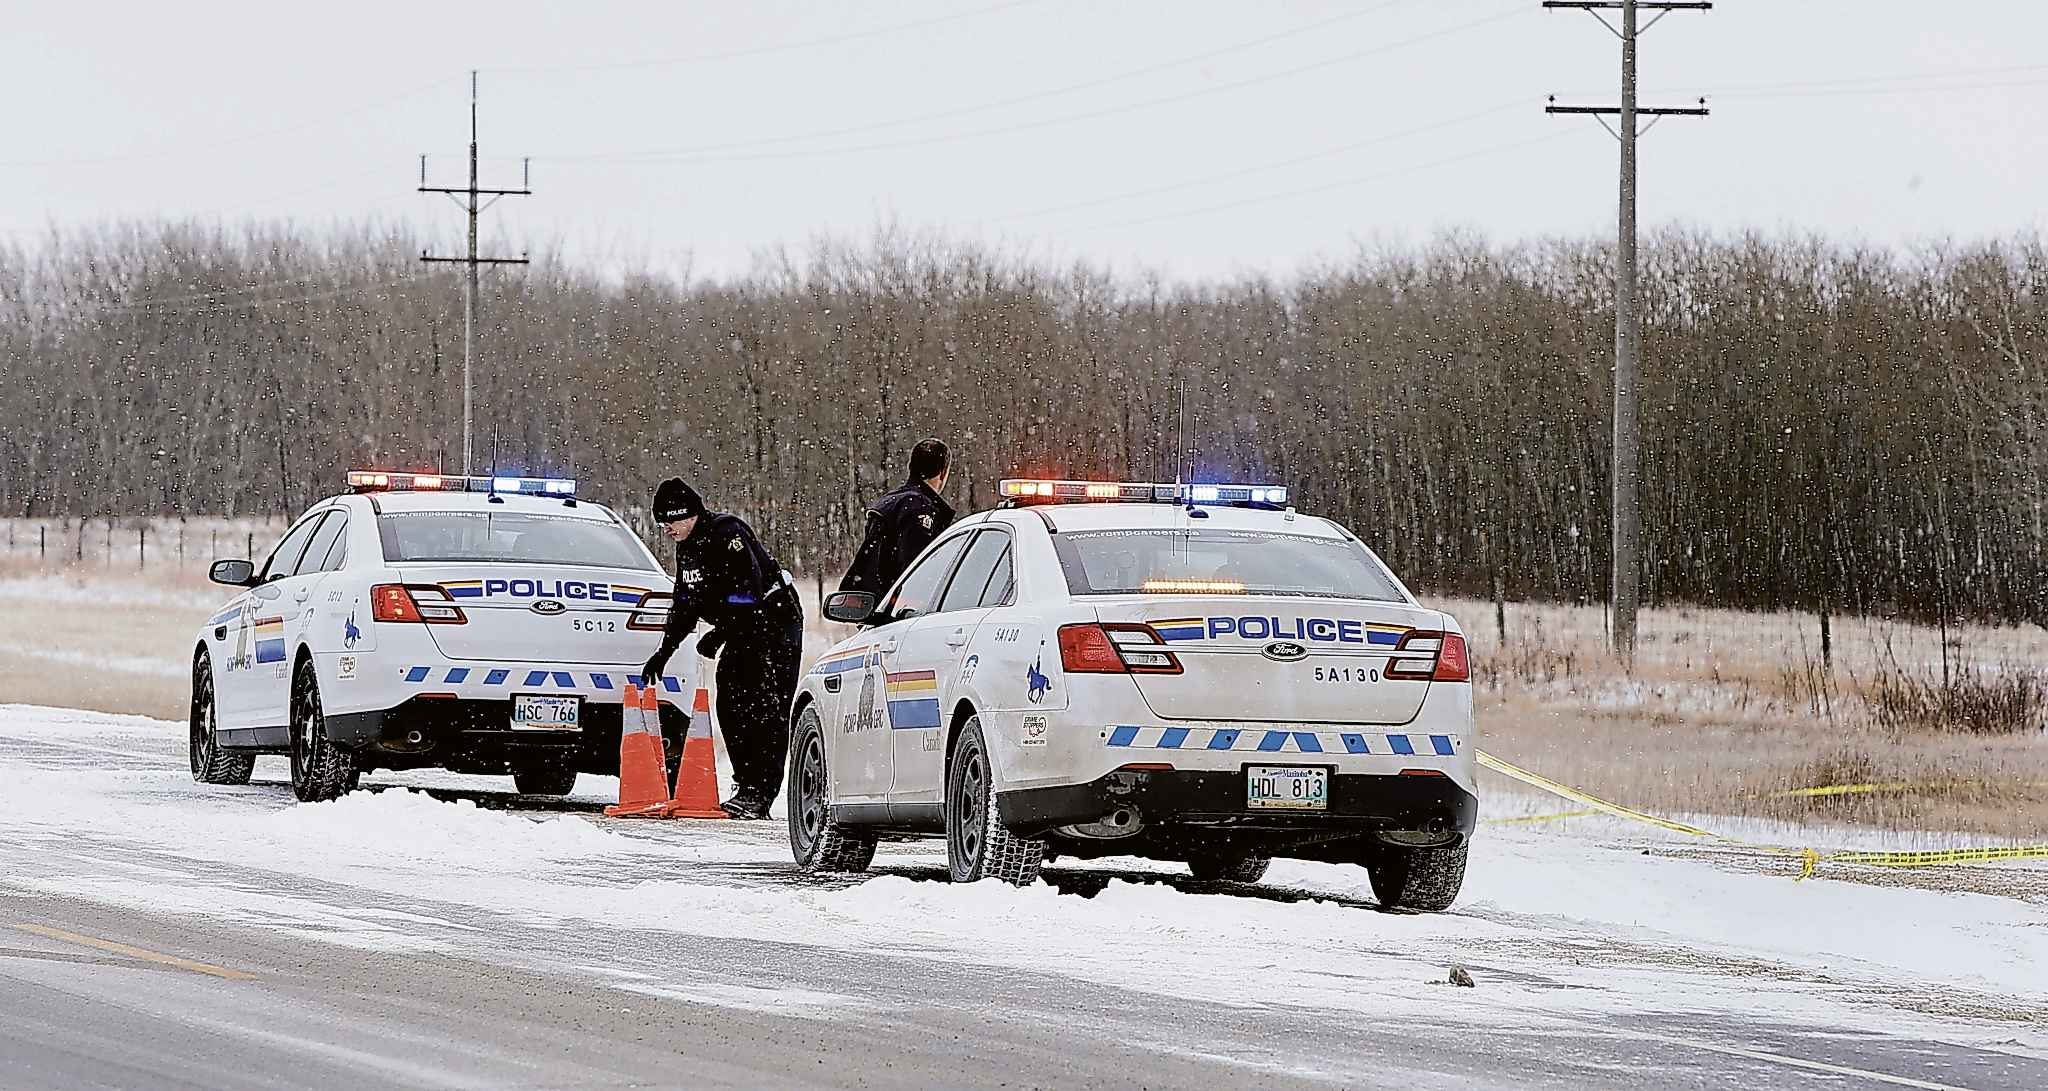 RCMP officers at a taped-off scene on Highway 6.